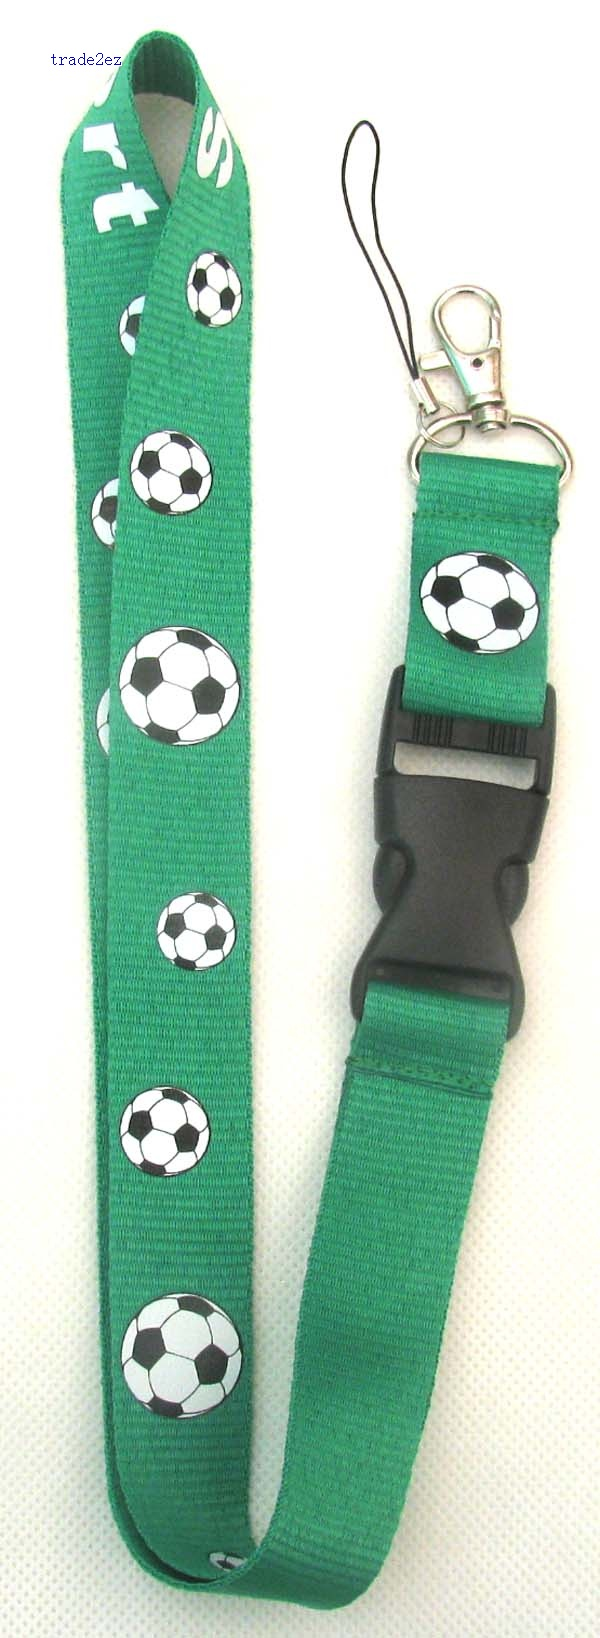 football brand Logo Lanyard/ MP3/4 cell phone/ keychains /Neck Strap